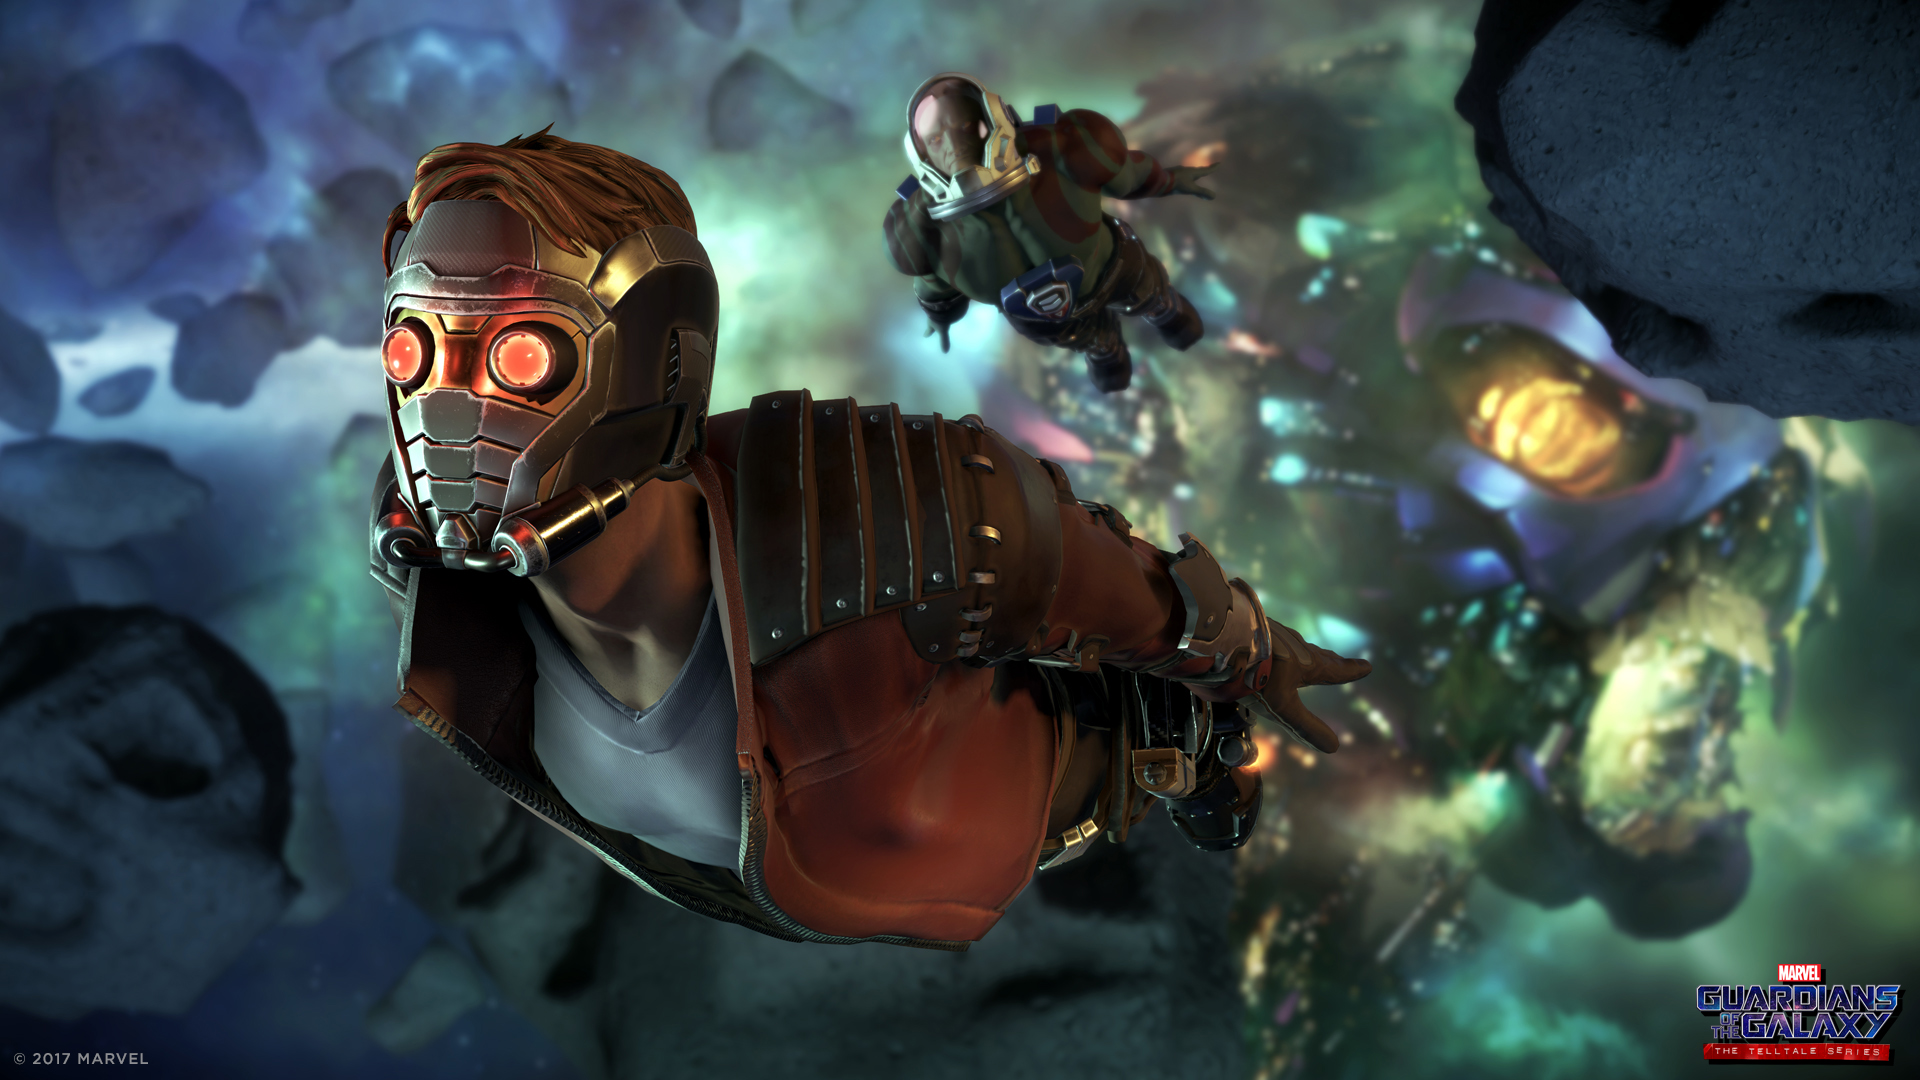 guardians of the galaxy vol 2 yify 720p